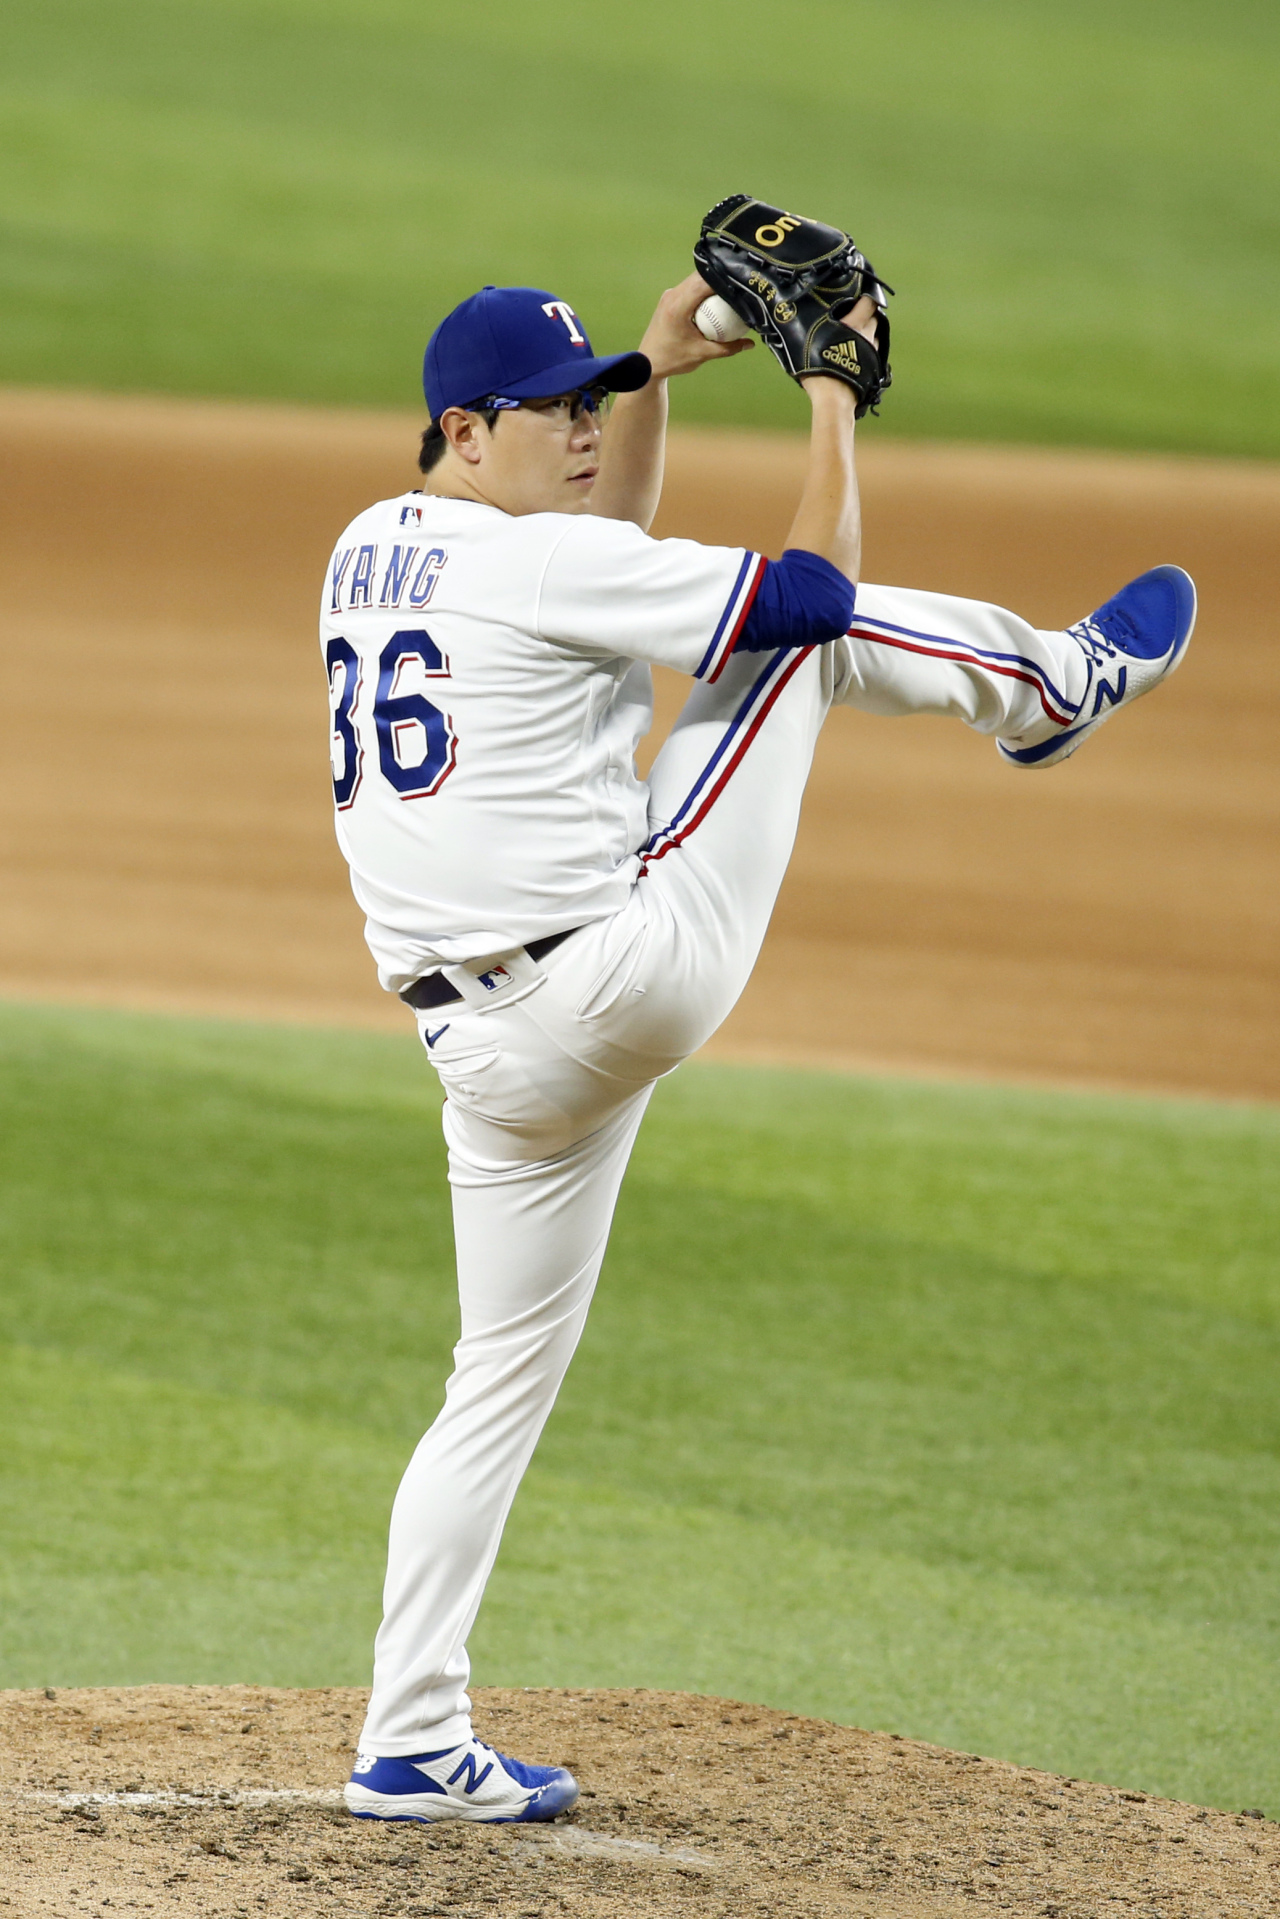 In this Associated Press photo, Yang Hyeon-jong of the Texas Rangers pitches against the Houston Astros in the top of the seventh inning of a Major League Baseball regular season game at Globe Life Field in Arlington, Texas, on Monday. (AP-Yonhap)